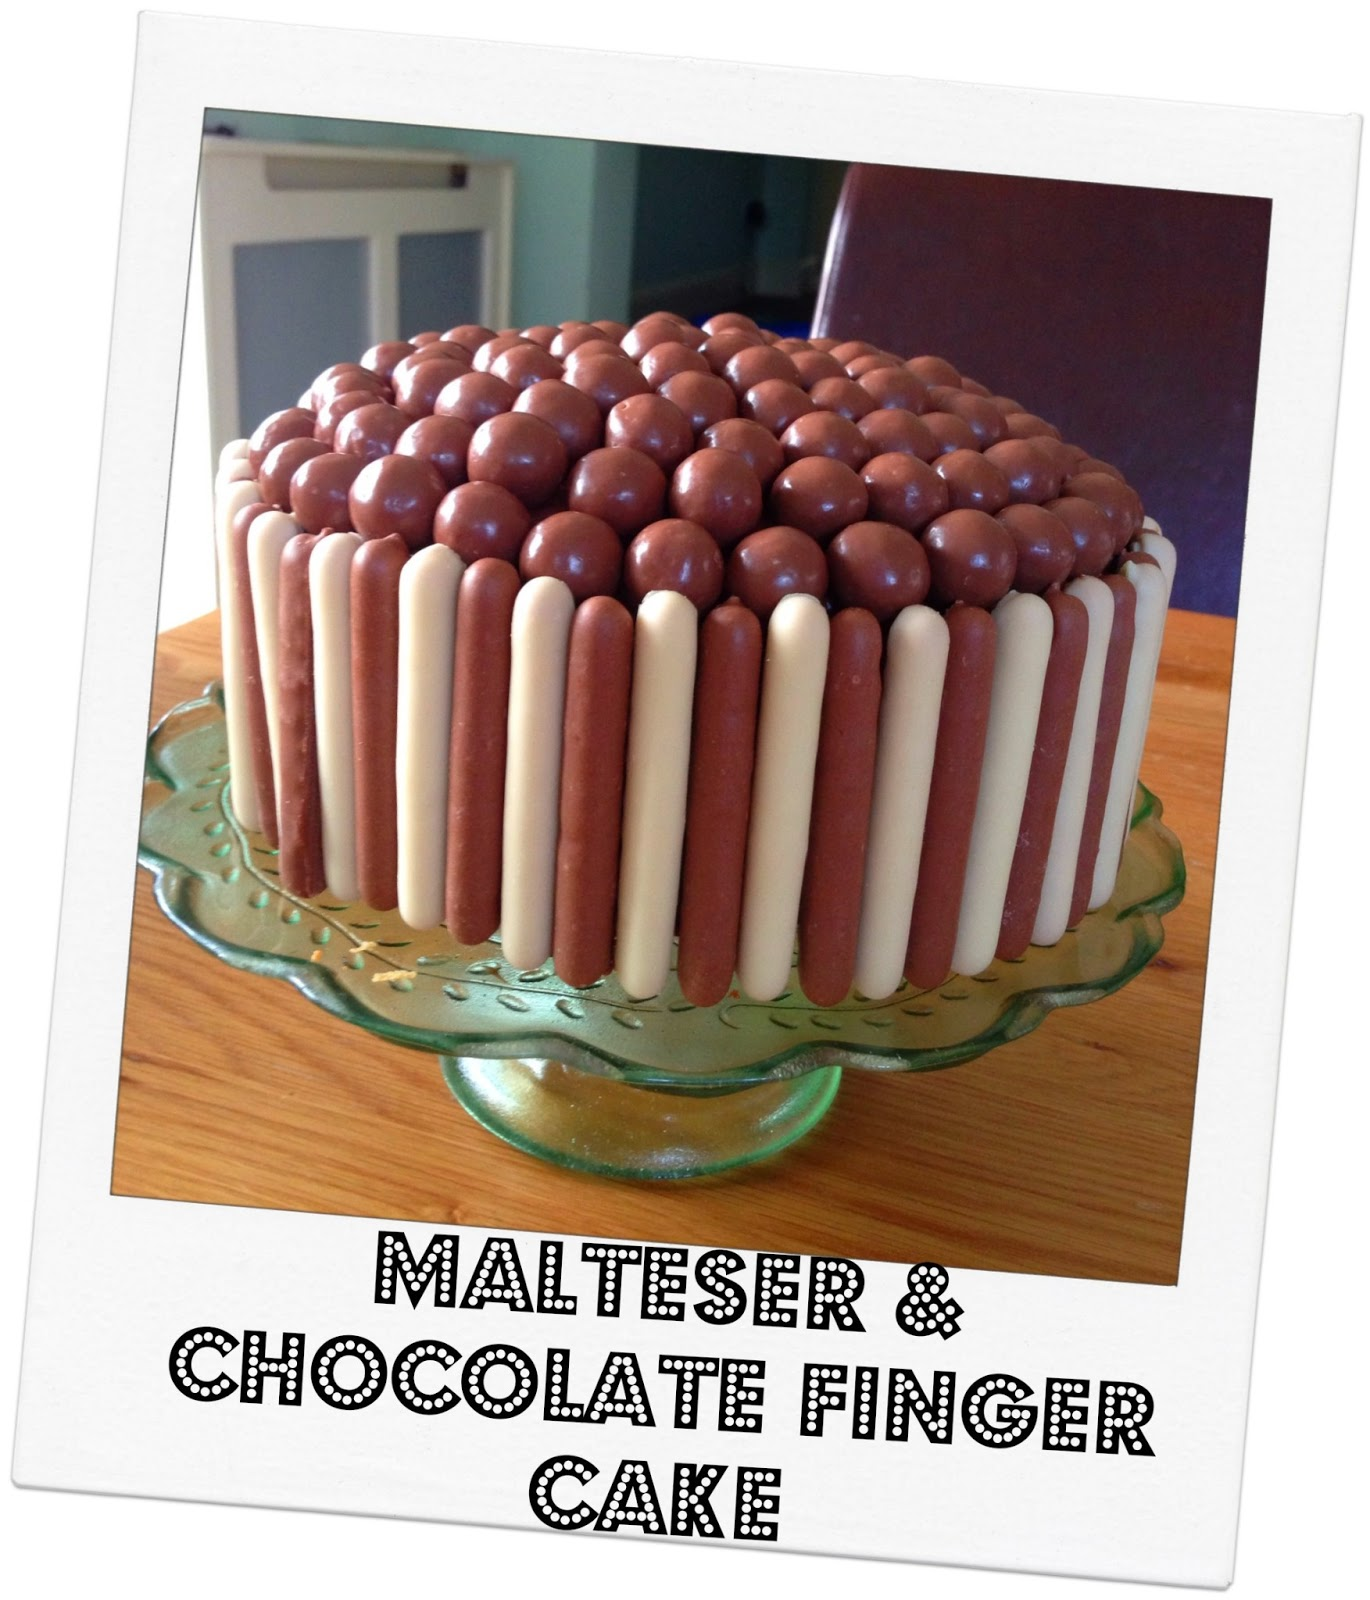 Mummy Mishaps: Malteser And Chocolate Finger Cake